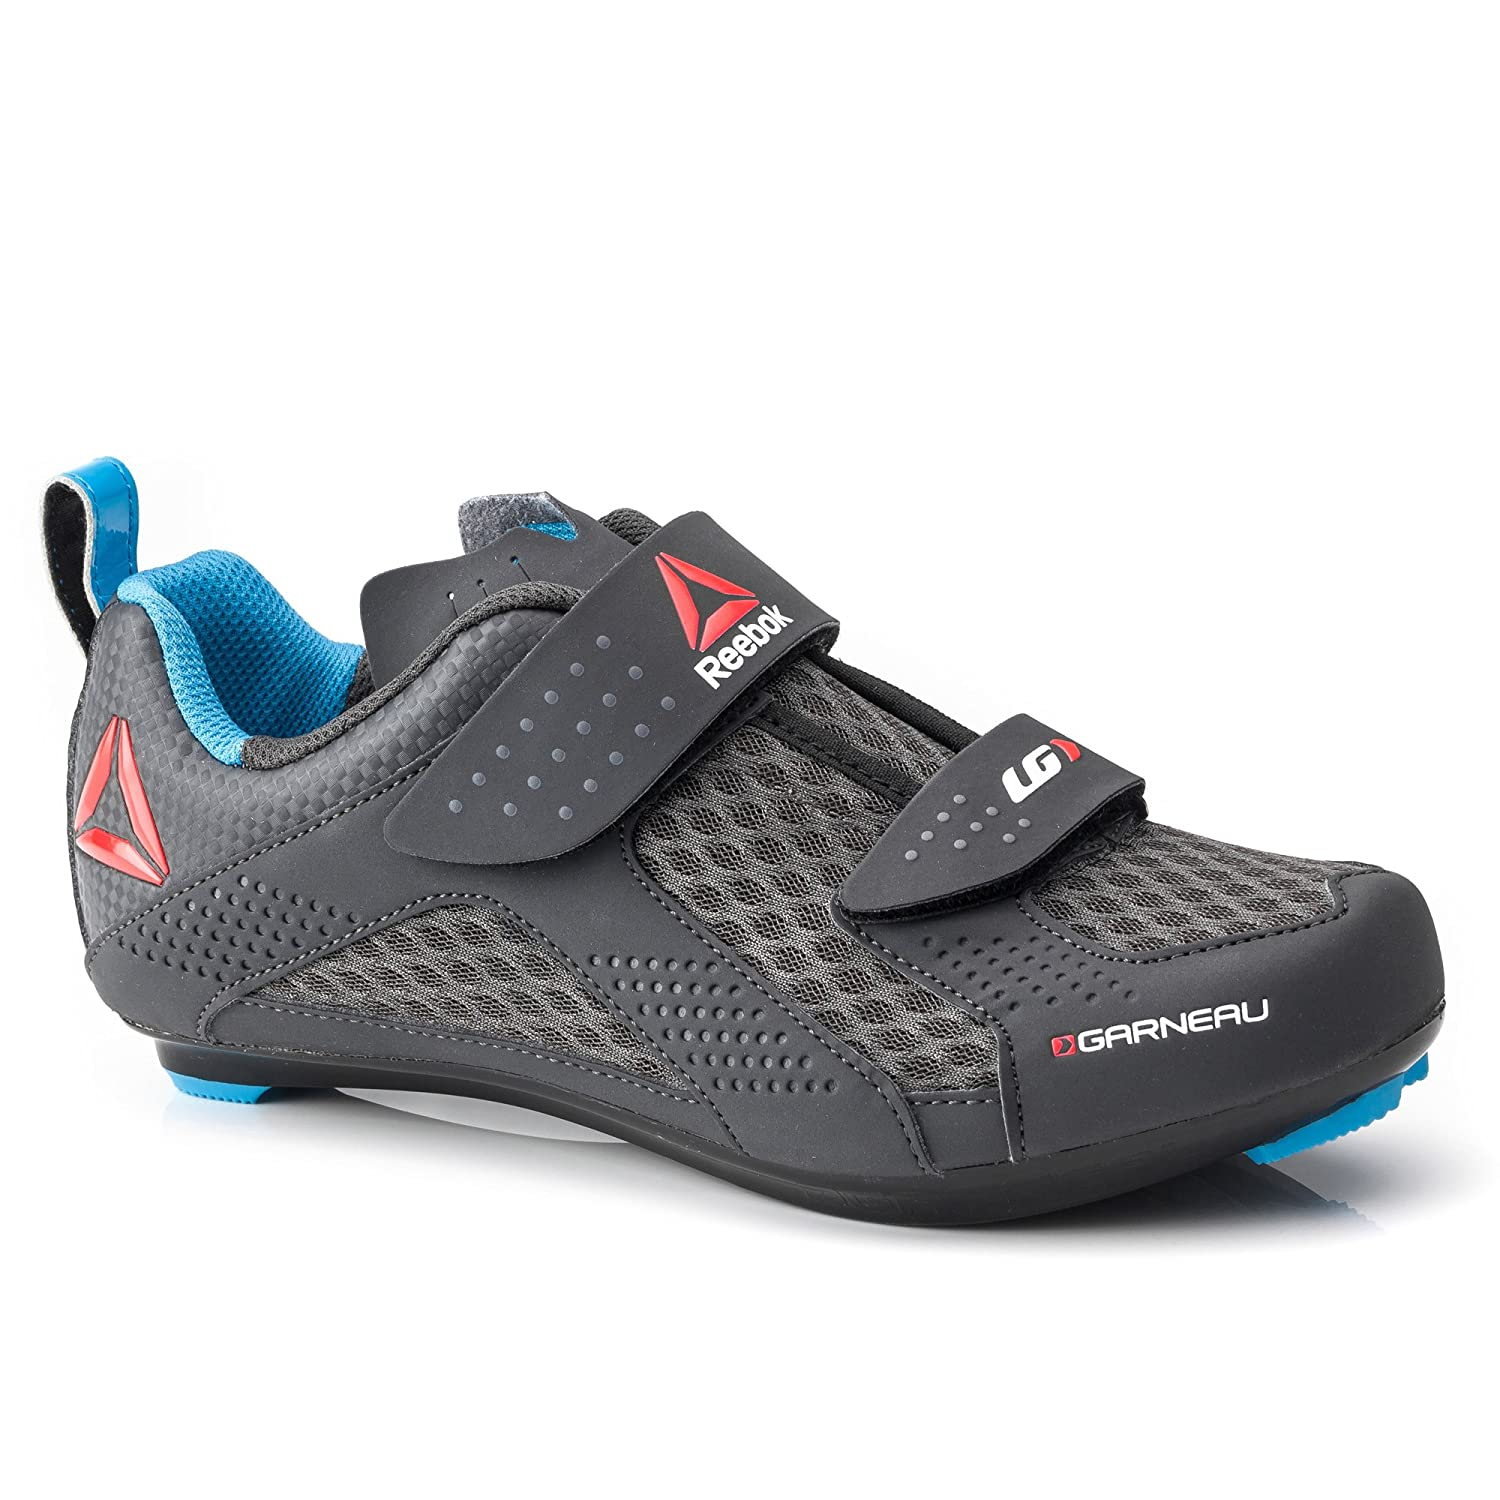 Louis Garneau Women's Actifly Indoor Cycling Shoes, A Collaboration with Reebok B06ZYXJ7PV 42